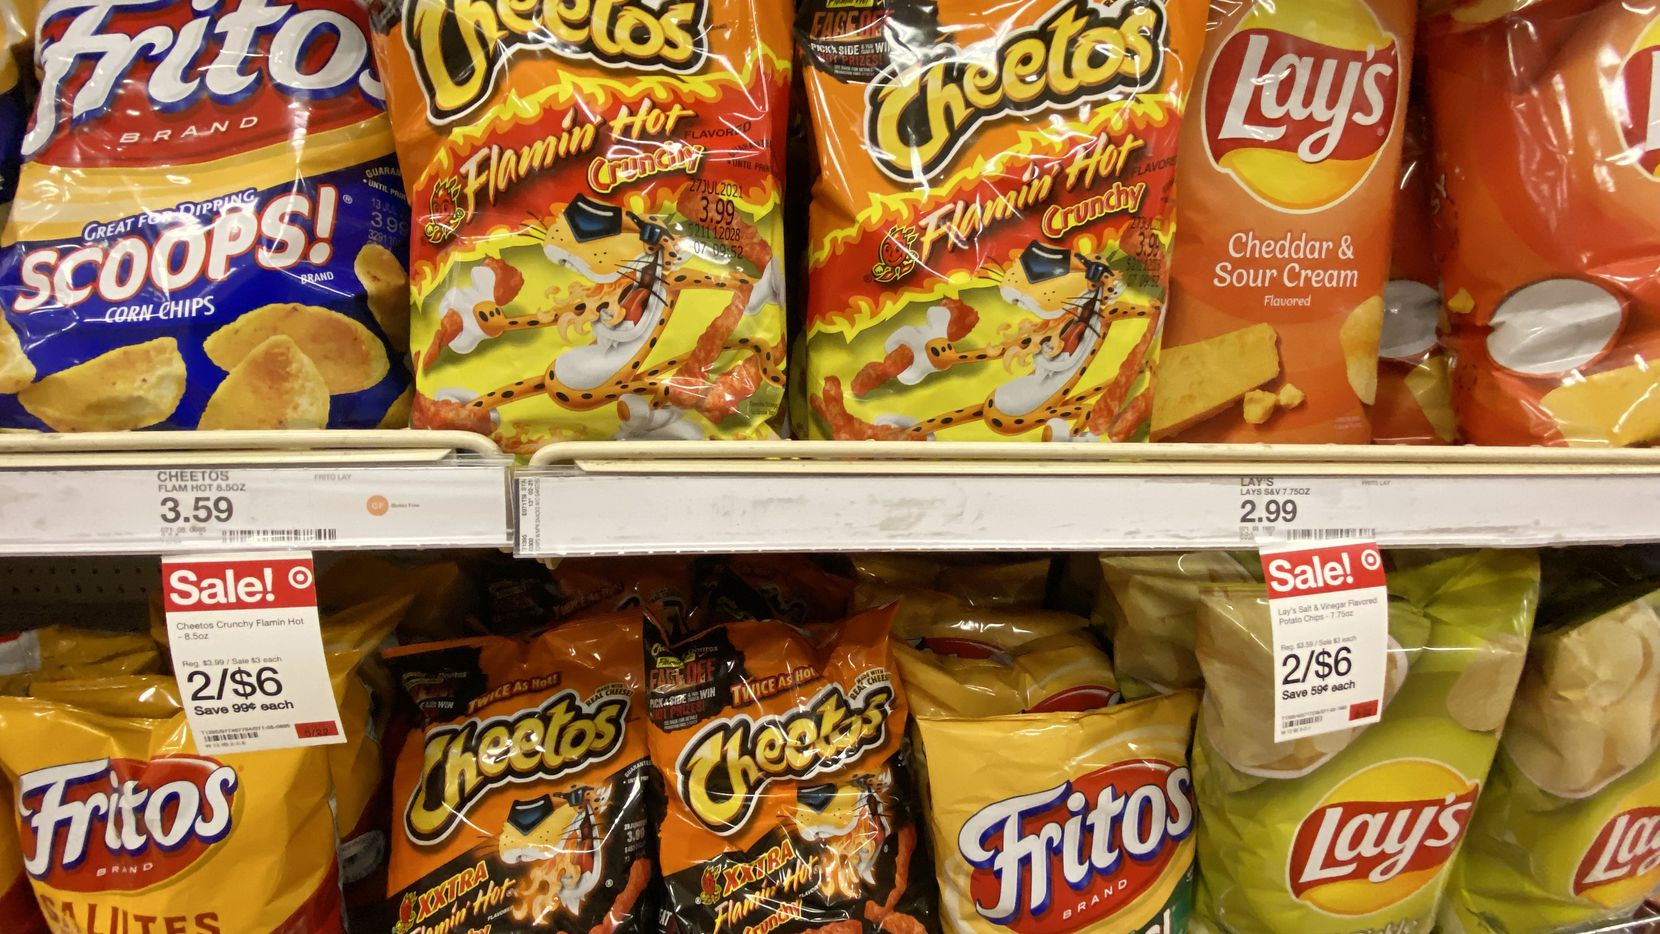 Plano-based snack food brand Frito-Lay snacks on the shelf at a Super Target in Lewisville, TX.